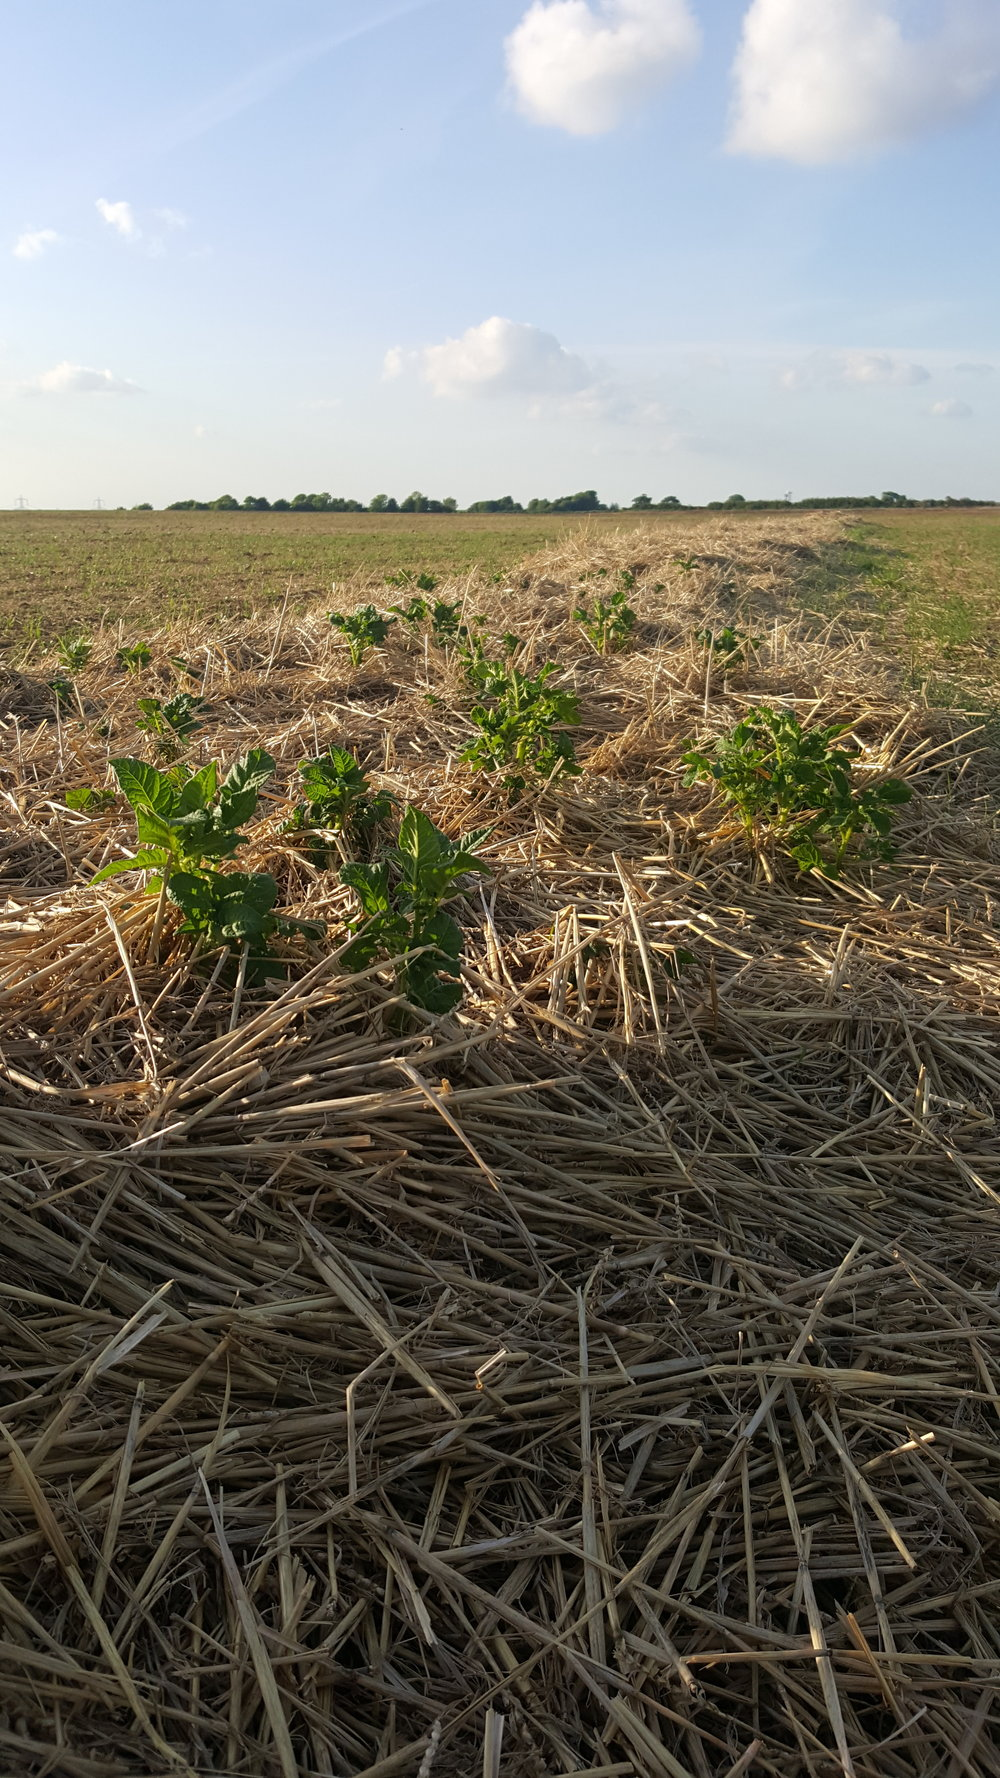 The No-Till Spud experiment area in the Roadshott Field at Groundswell